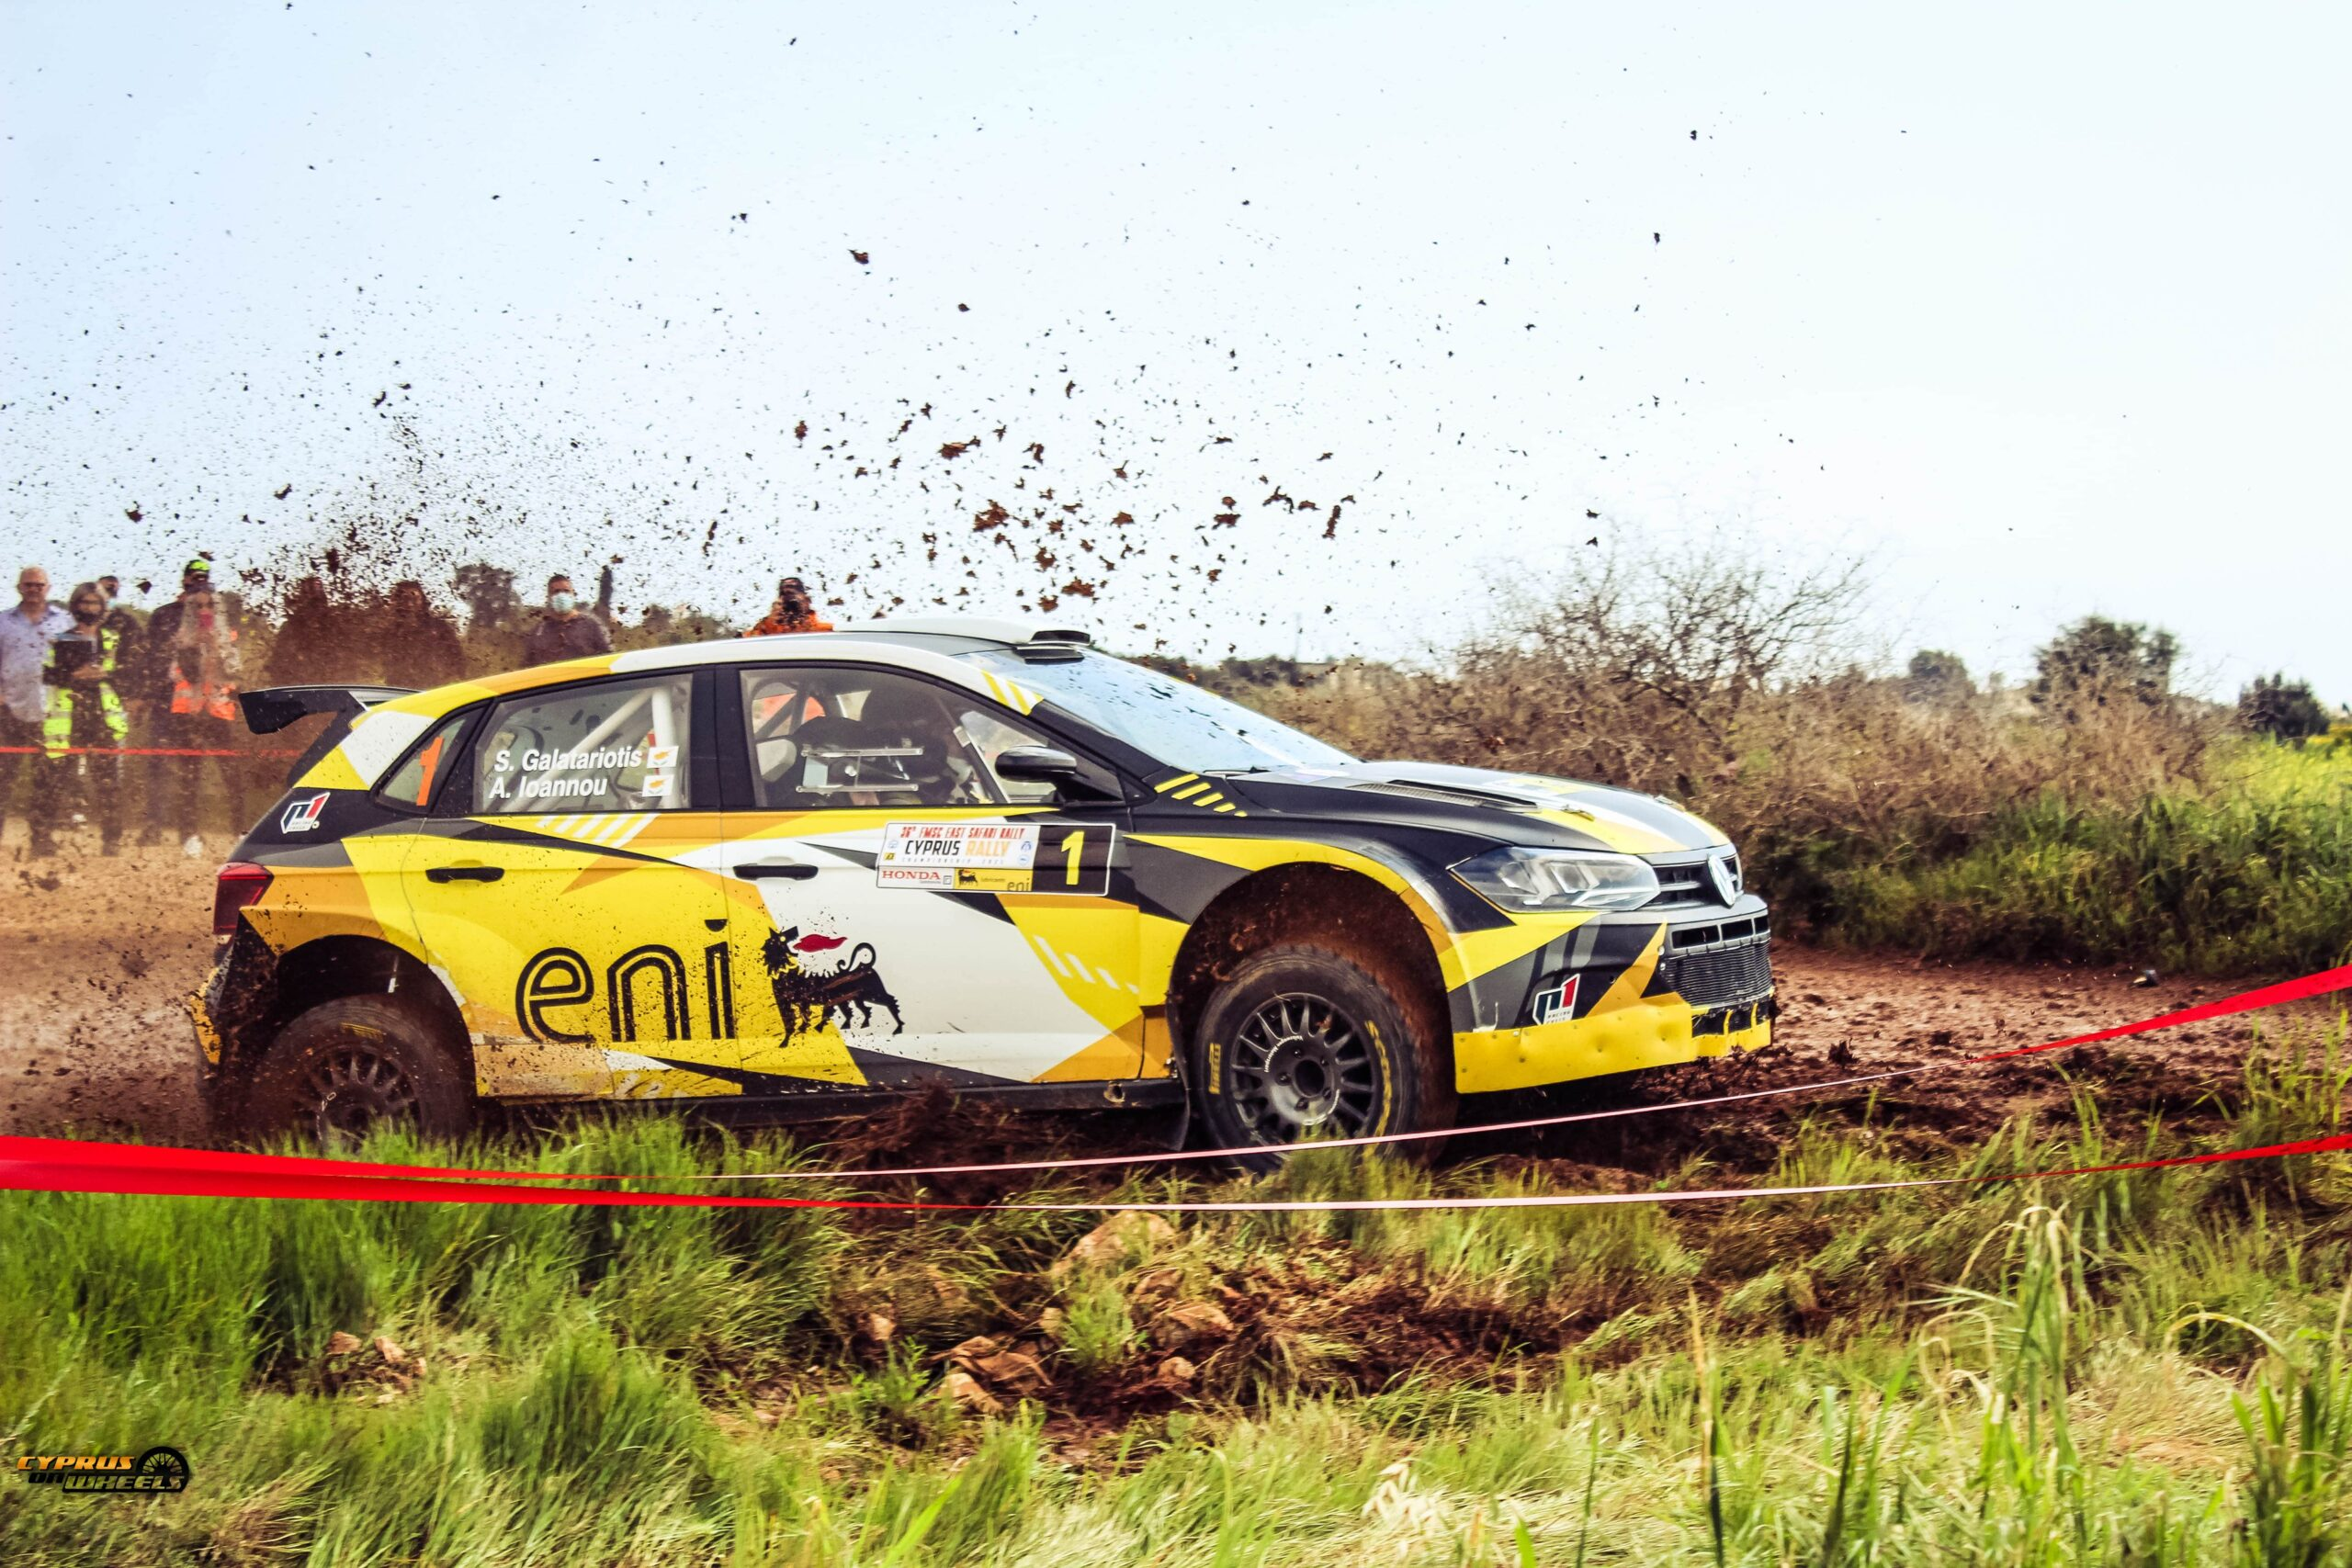 Cyprus rally event coverage